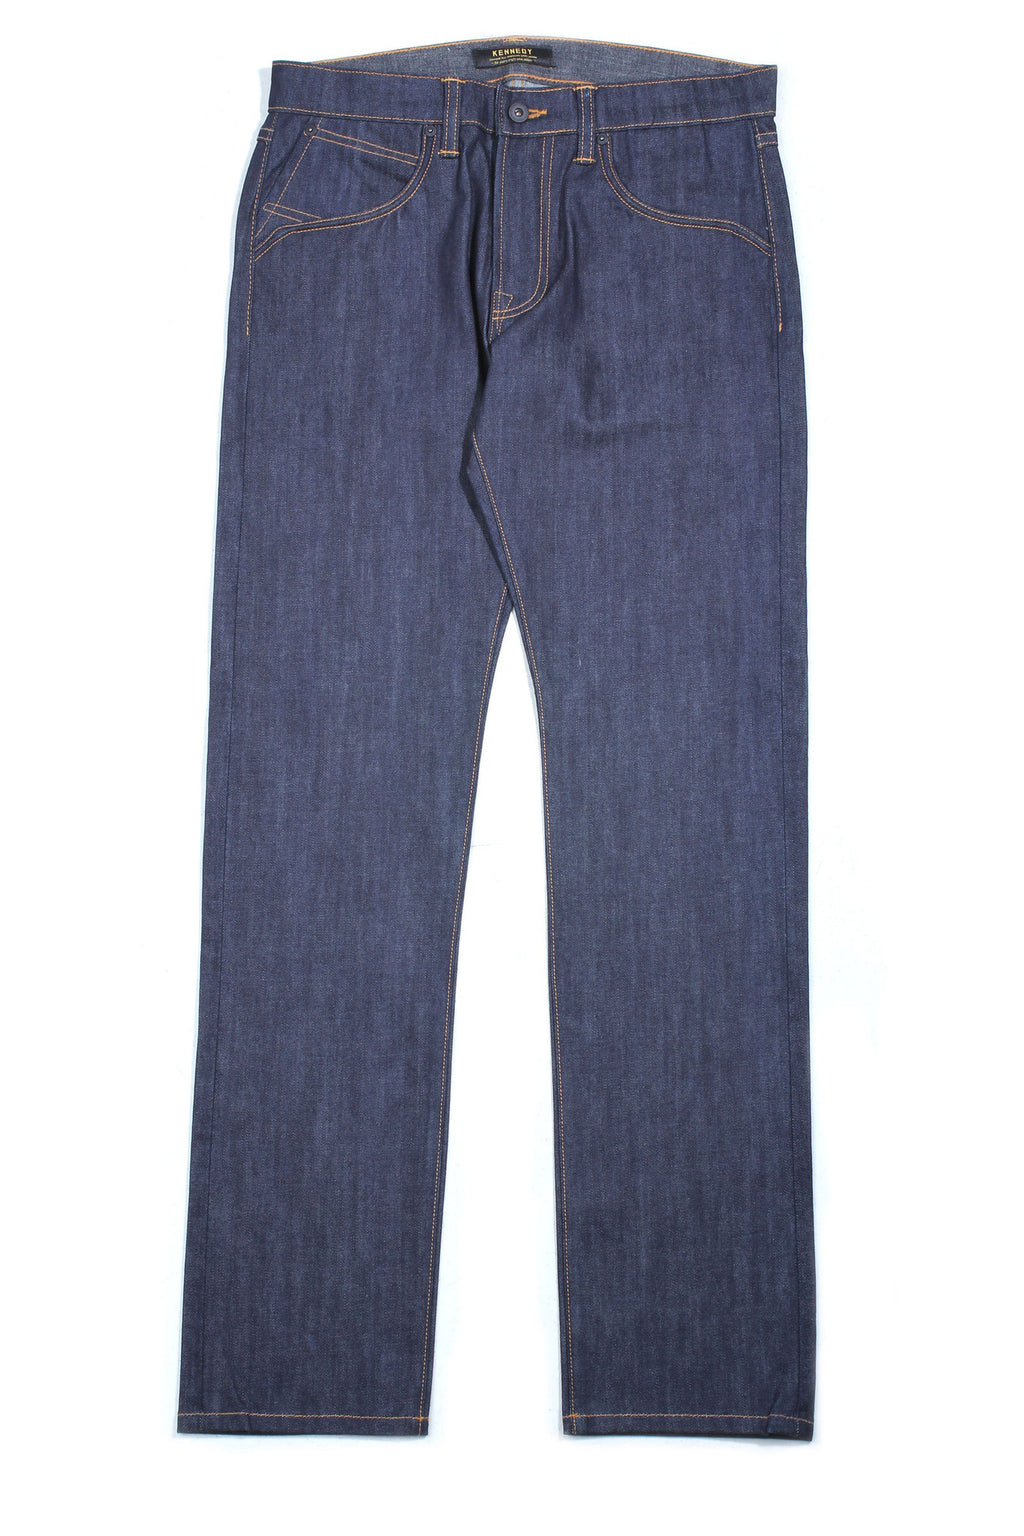 Kennedy Denim Z-Line Pants Raw Indigo Pants Ascent Wear - 1